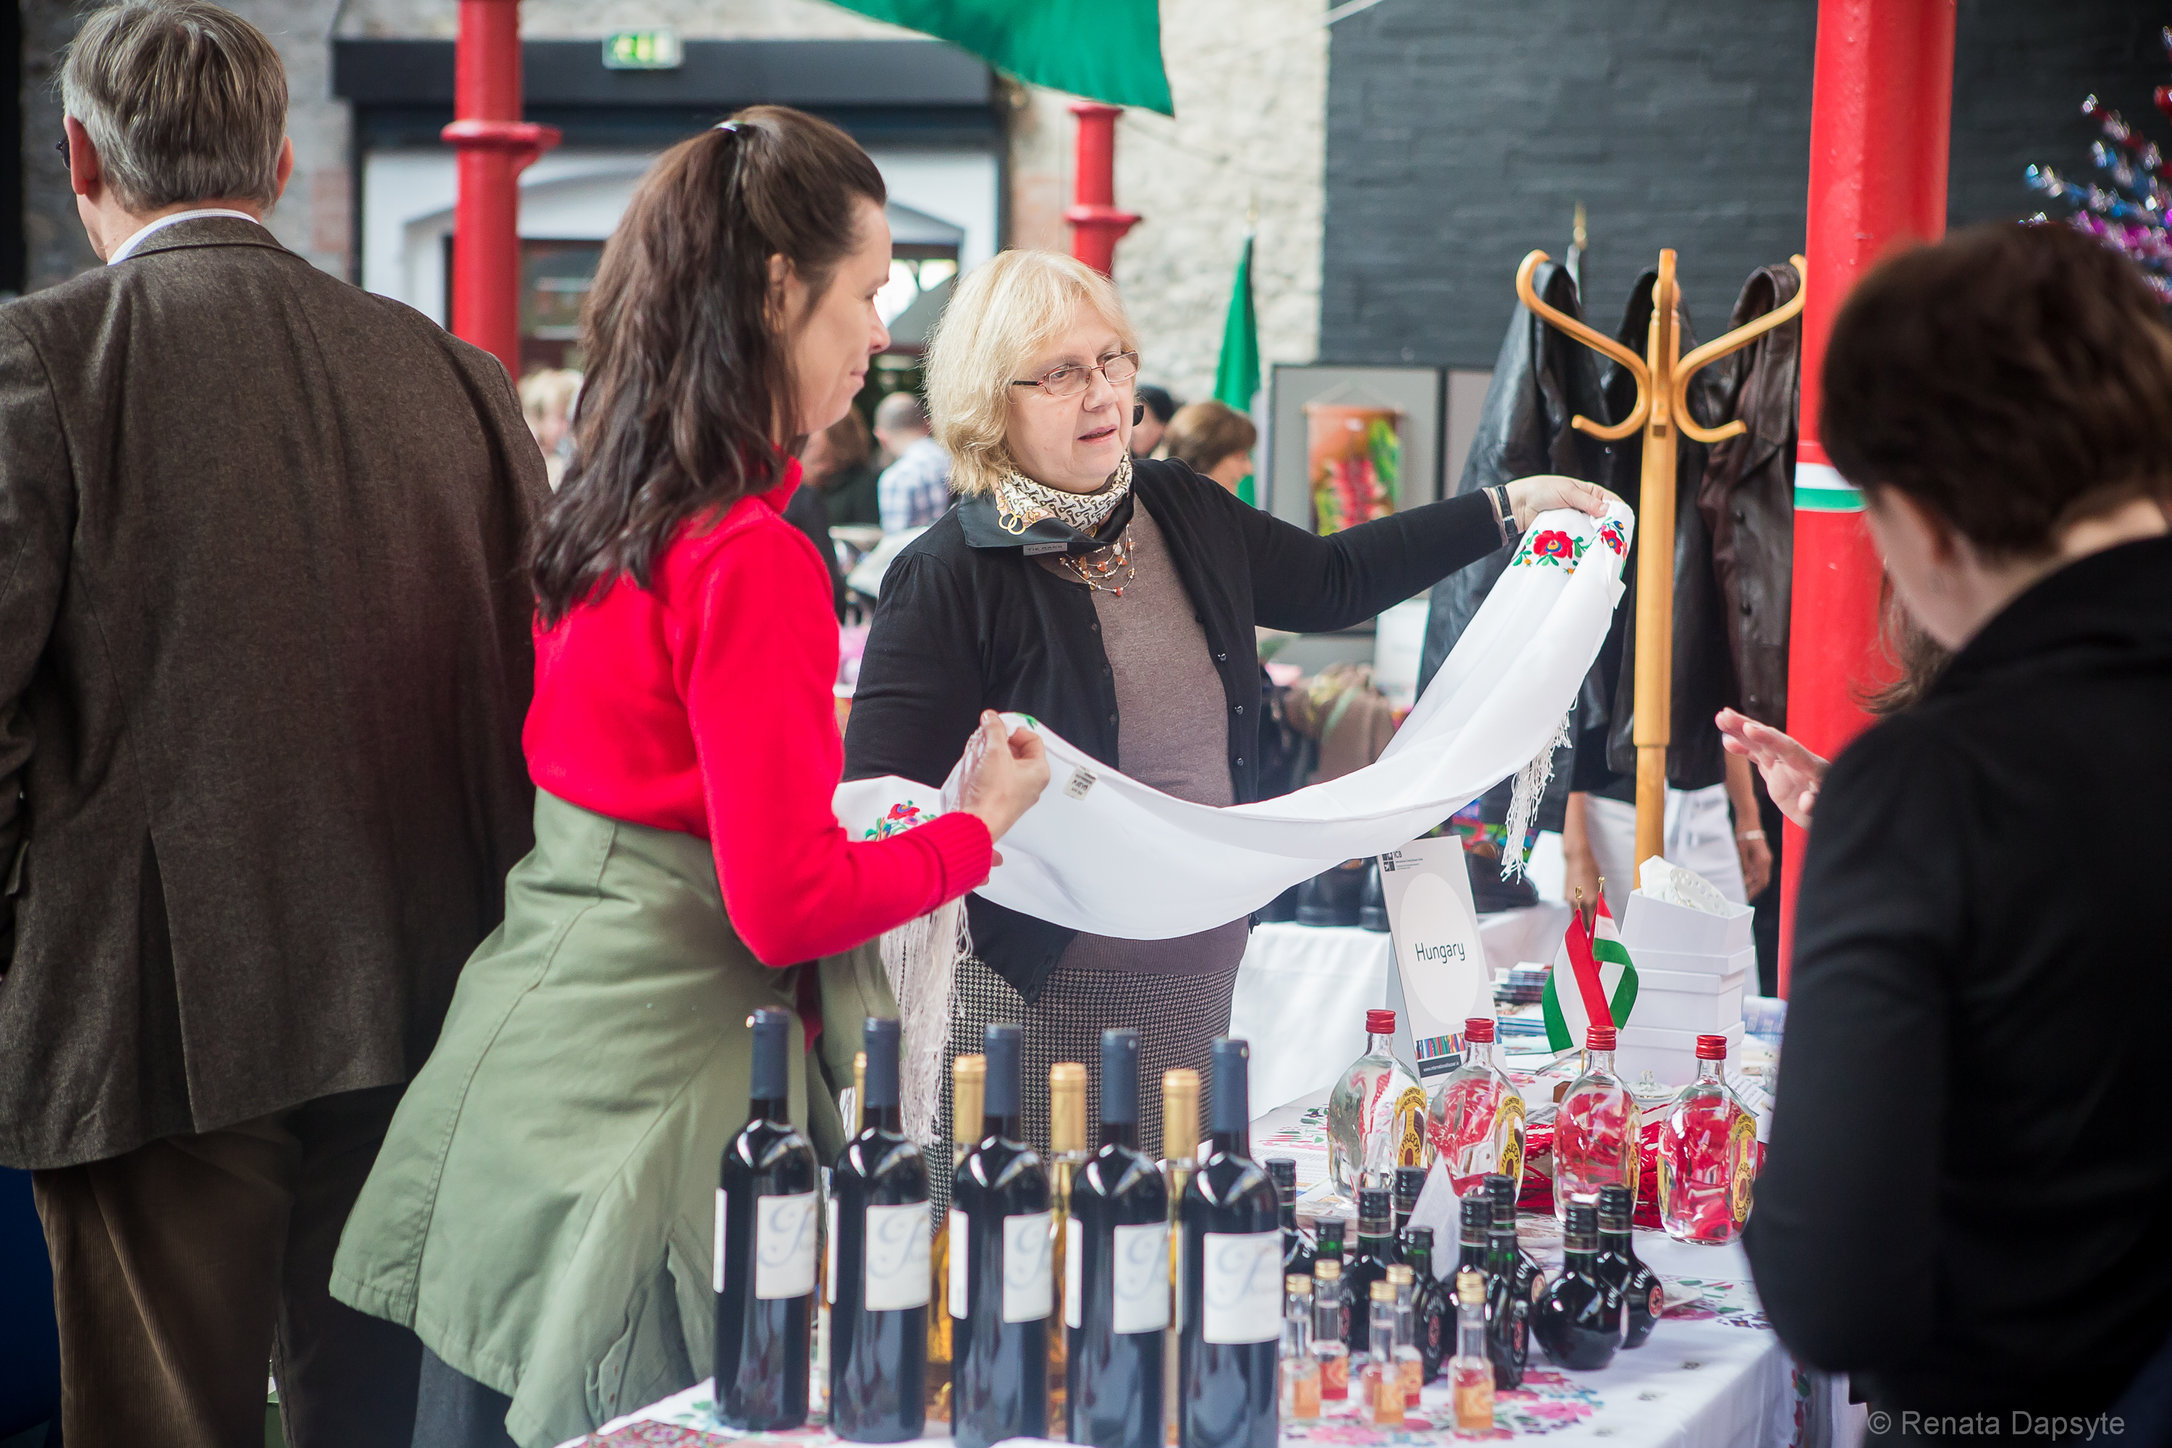 066_International Charity Bazaar Dublin 2013.JPG